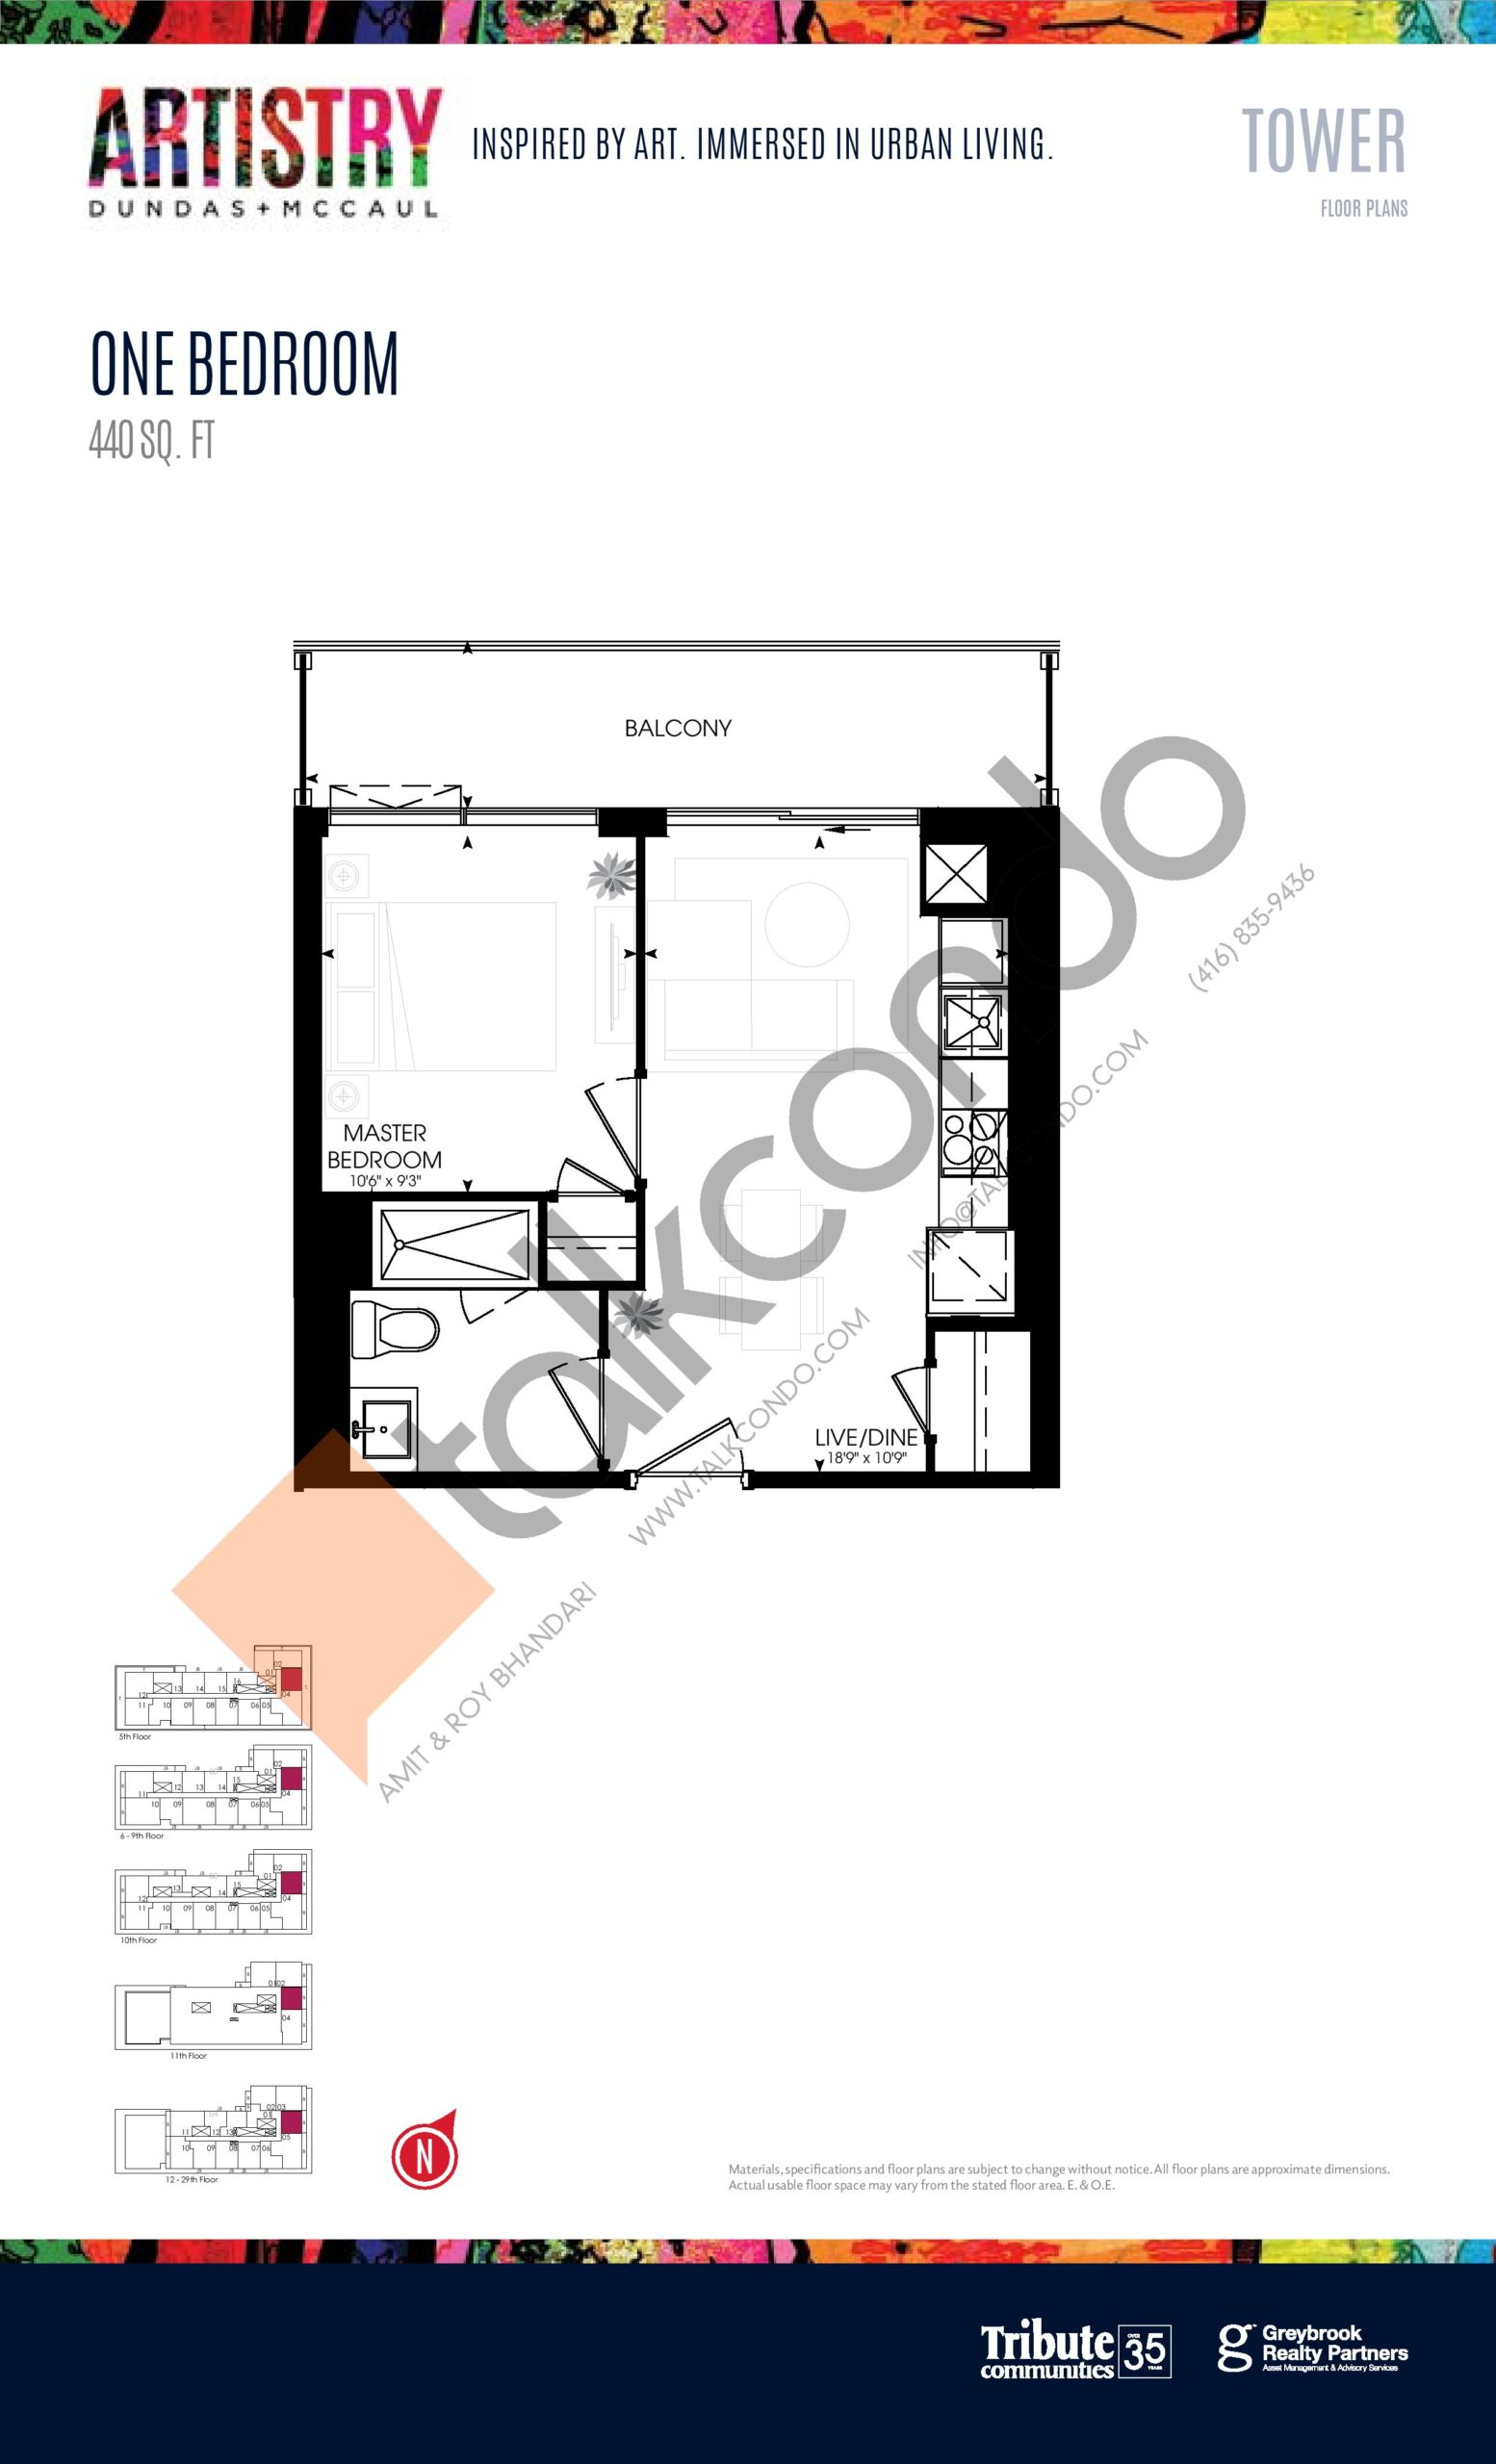 440 sq. ft. - Tower Floor Plan at Artistry Condos - 440 sq.ft